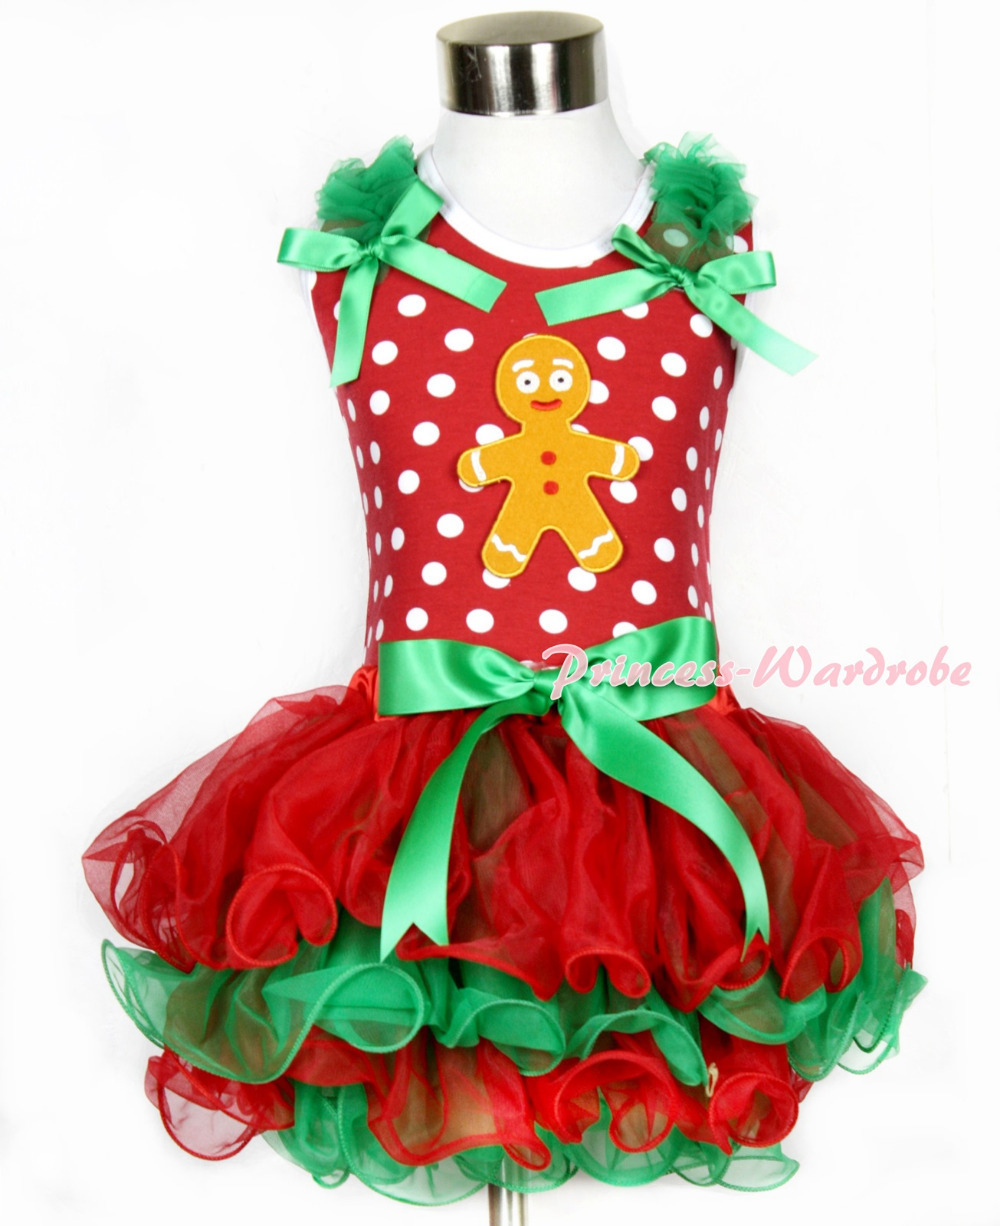 Xmas Minnie Dots Tank Top With Kelly Green Ruffles Kelly Green Bow Brown Gingerbread Man Bow Red Green Petal Pettiskirt MAMH091 minnie dots 4th birthday number minnie print tank top with white ruffles